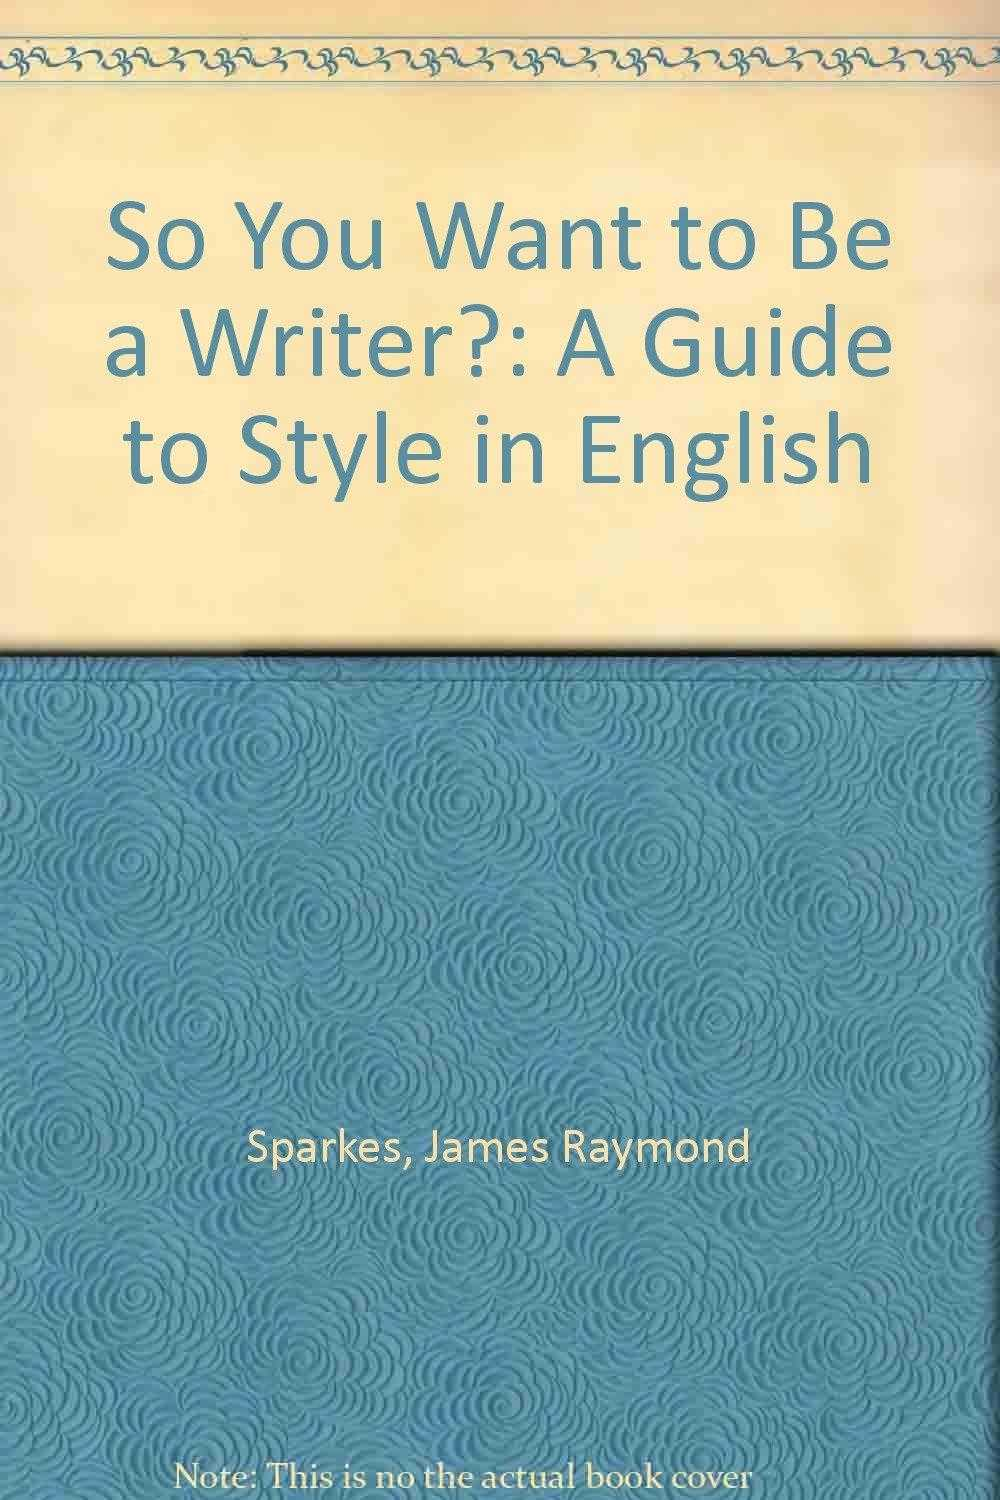 SPARKES, JAMES RAYMOND - So You Want to be a Writer?: A Guide to Style in English